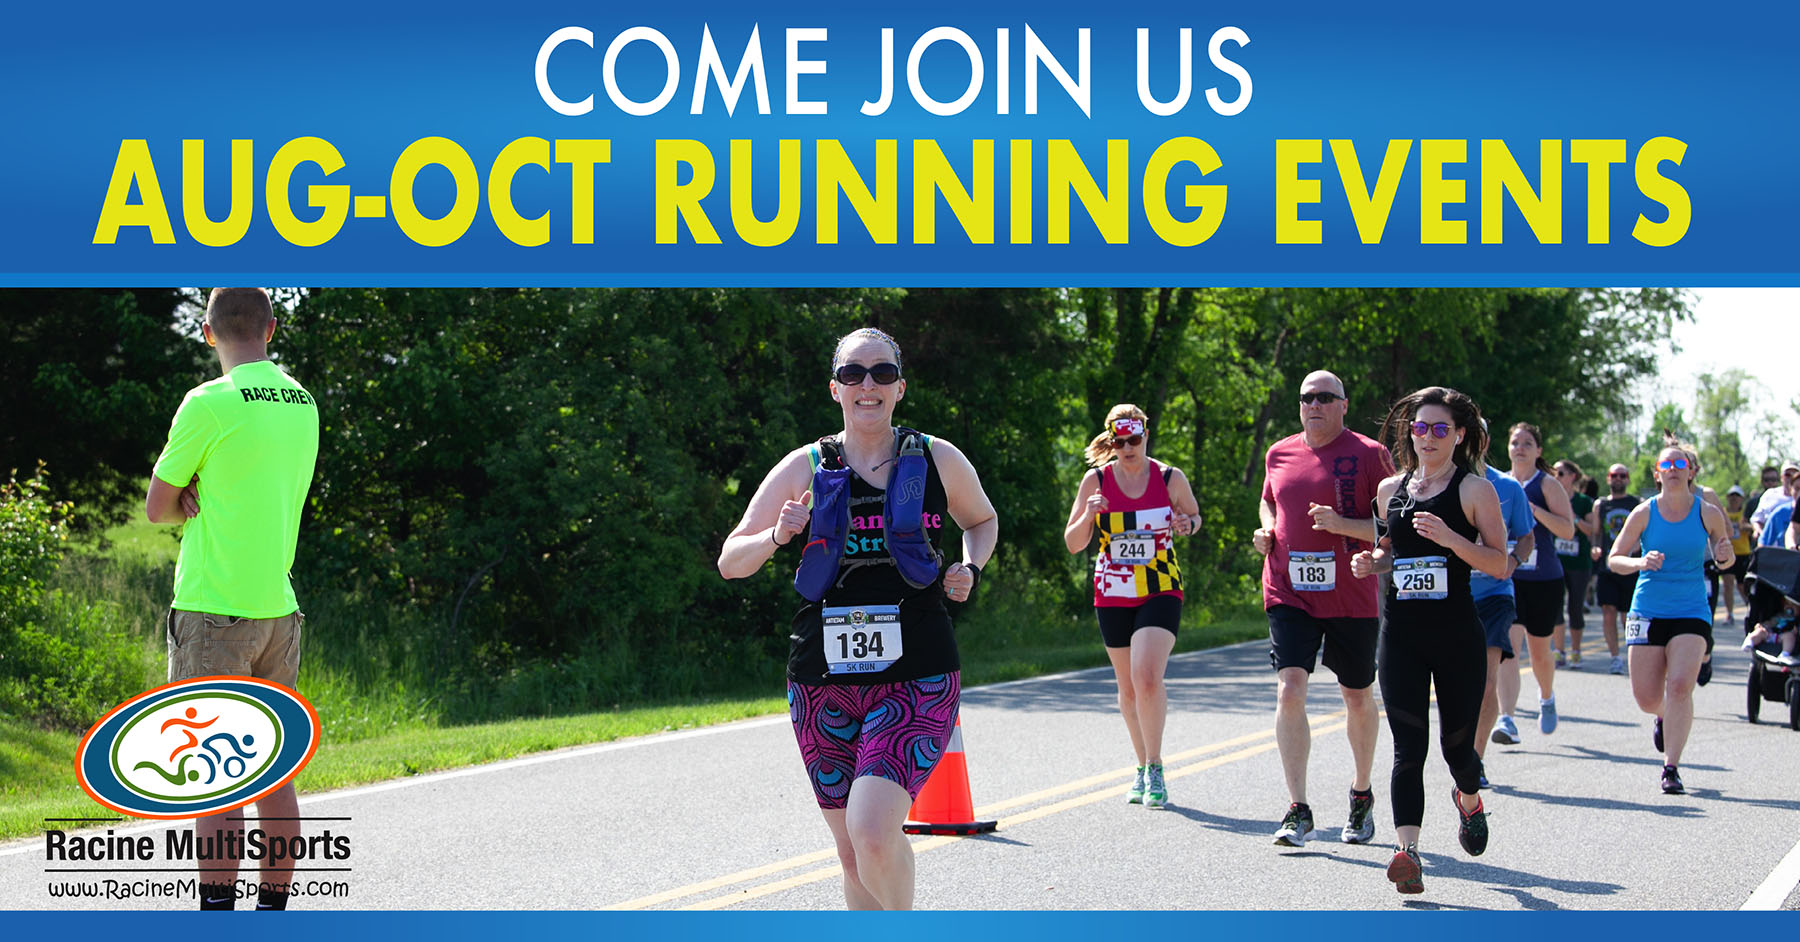 August-October 2019 Running Events